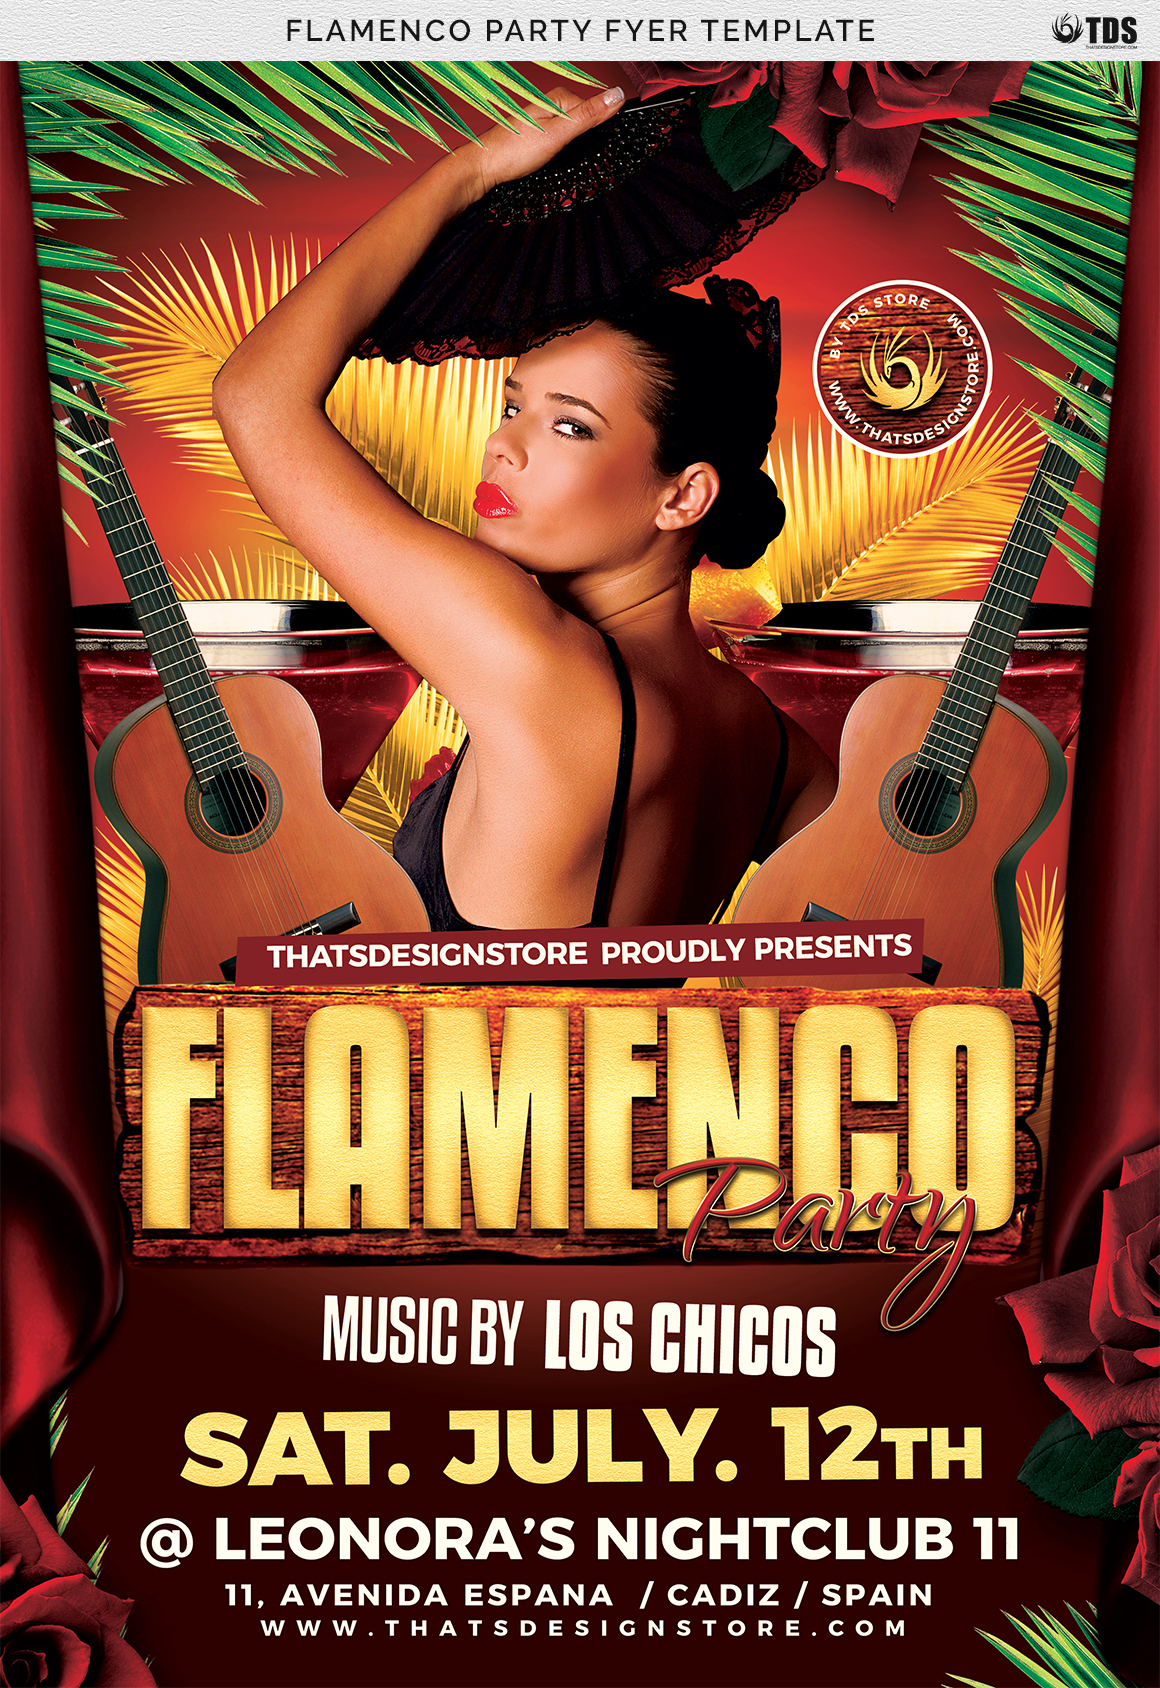 Flamenco Party Flyer Template example image 7